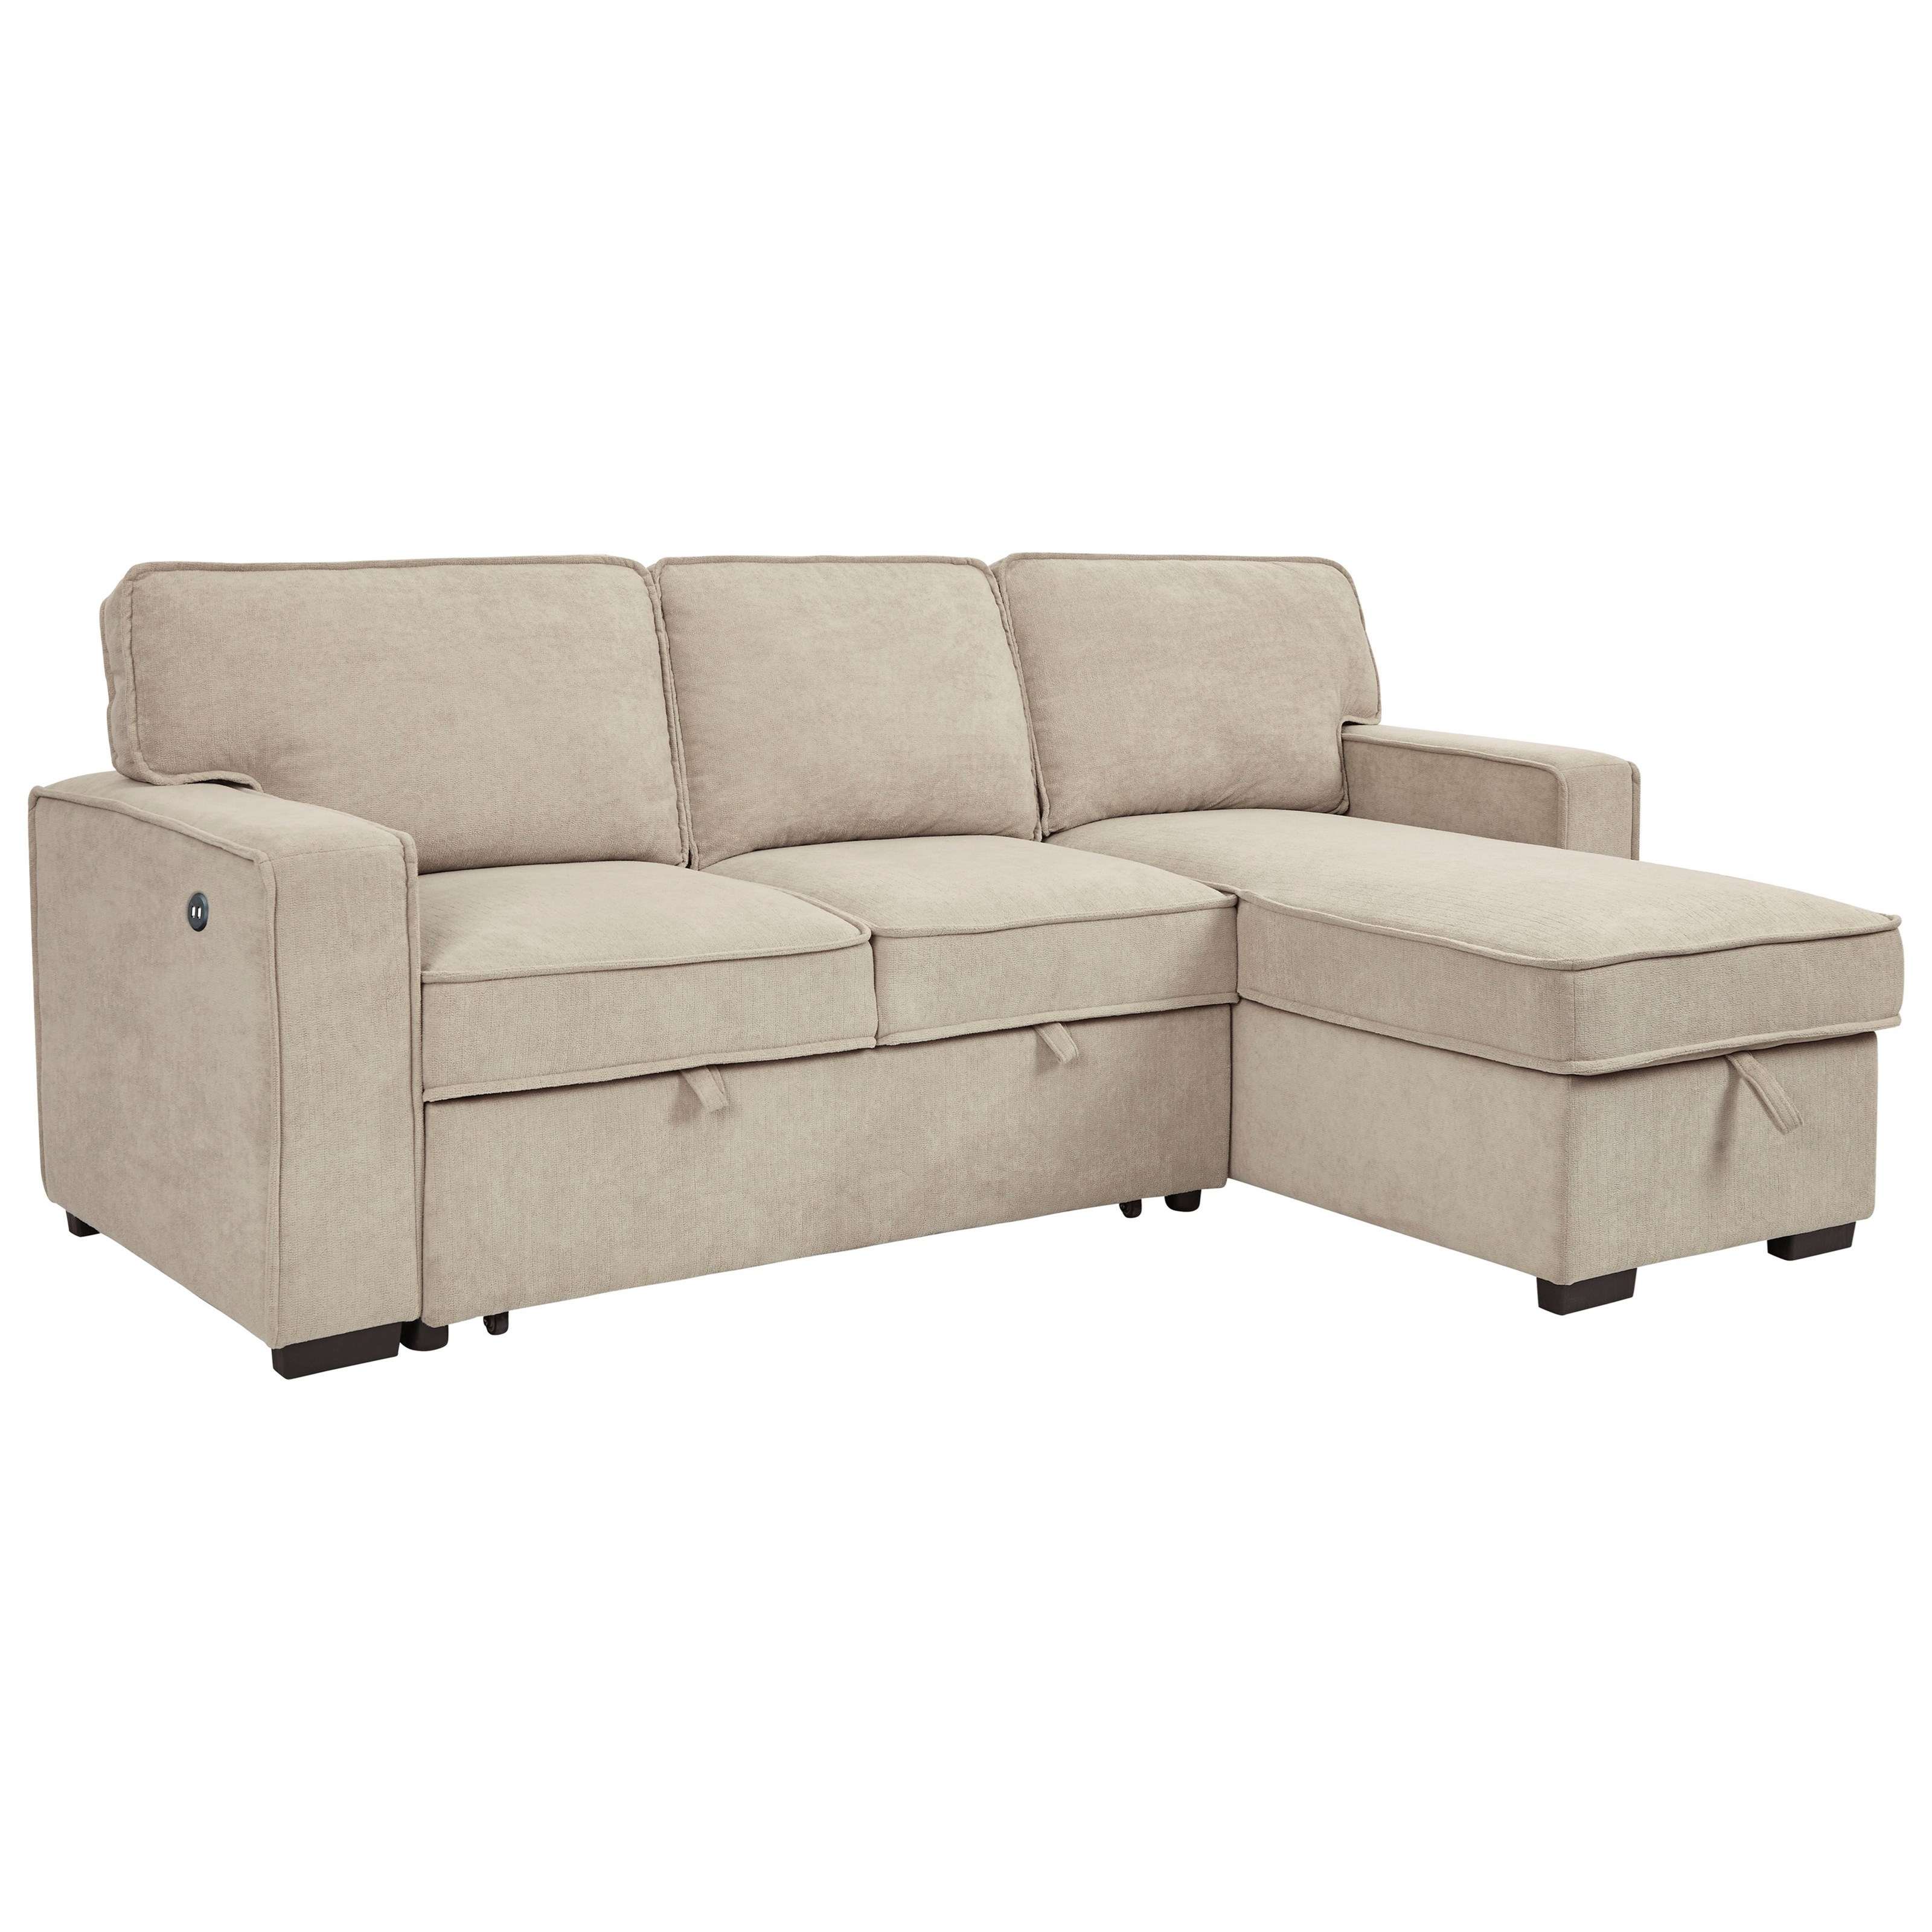 Darton Sofa Chaise with Pop Up Bed & Storage Chaise by Signature Design by Ashley at Beck's Furniture